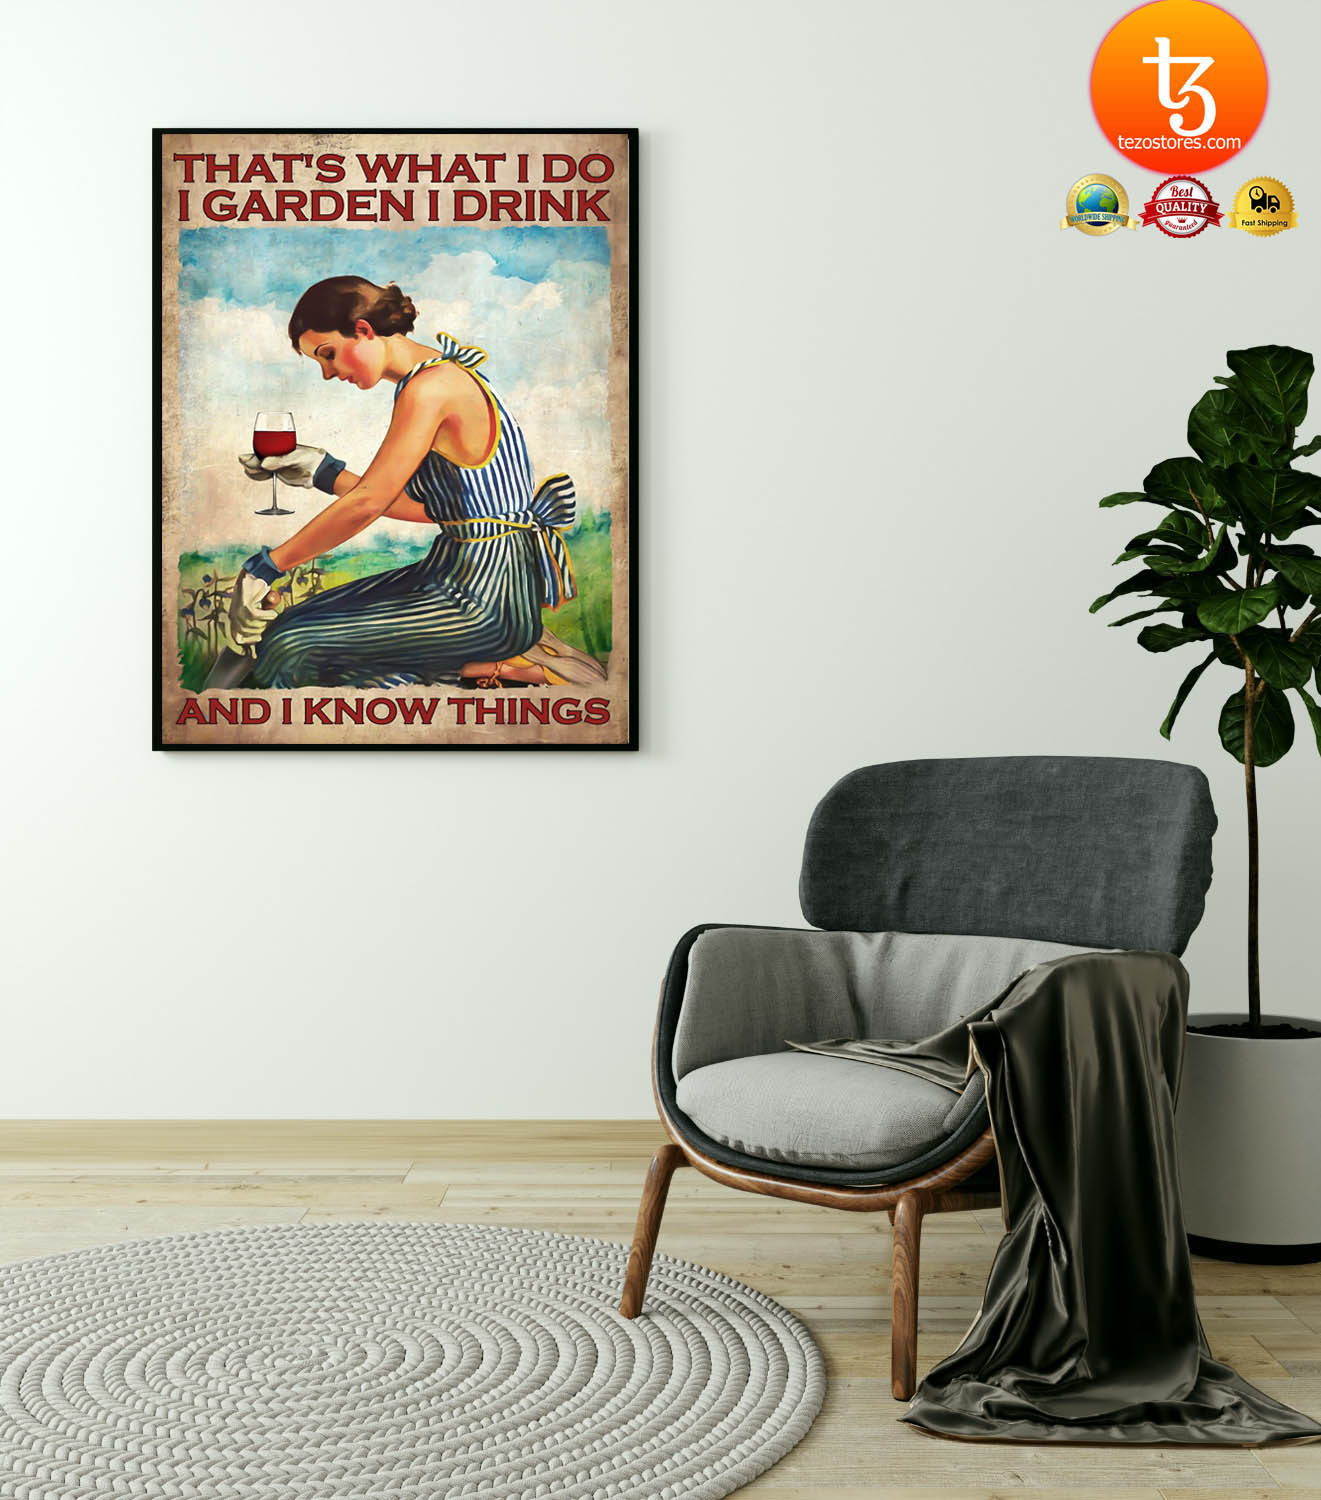 Woman That's what I do I garden I drink and I know things poster 23